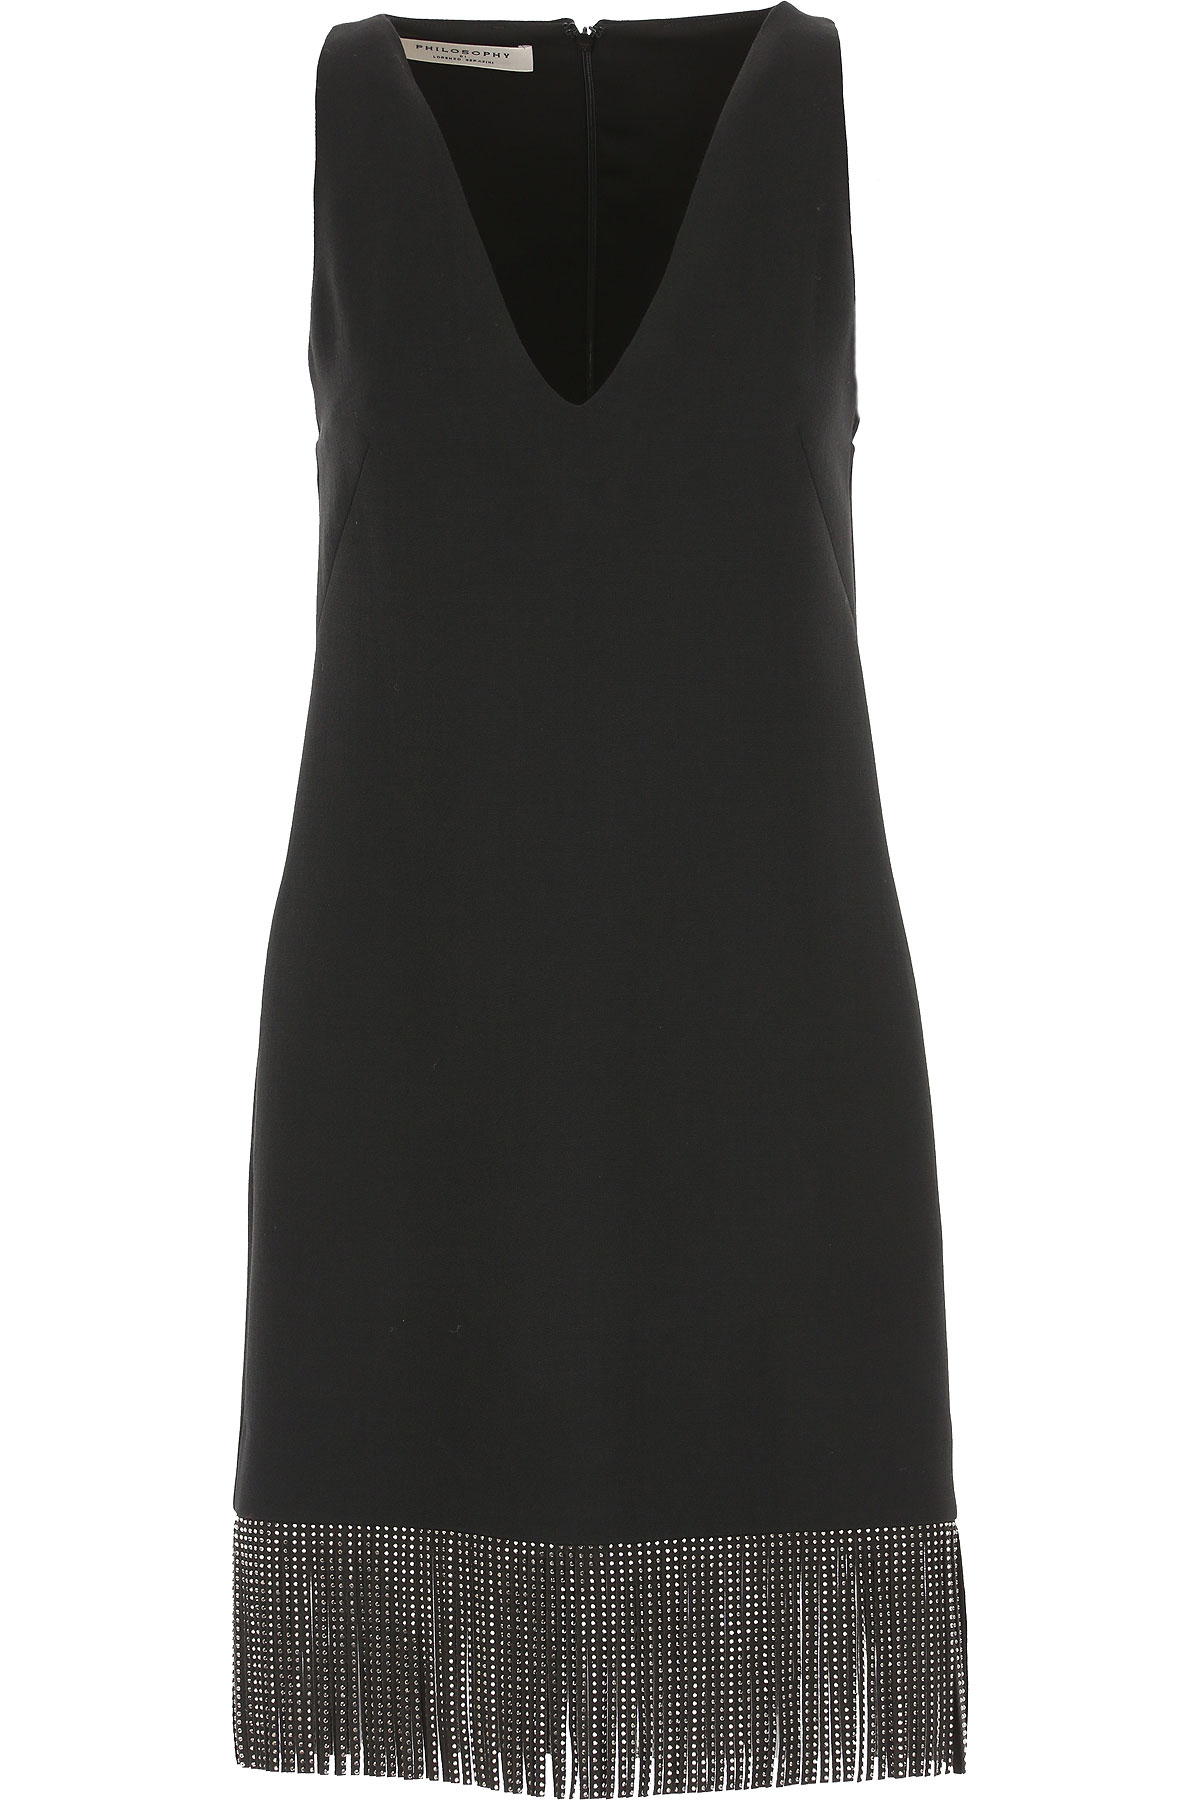 Philosophy di Lorenzo Serafini Dress for Women, Evening Cocktail Party On Sale, Black, polyester, 2019, 2 4 6